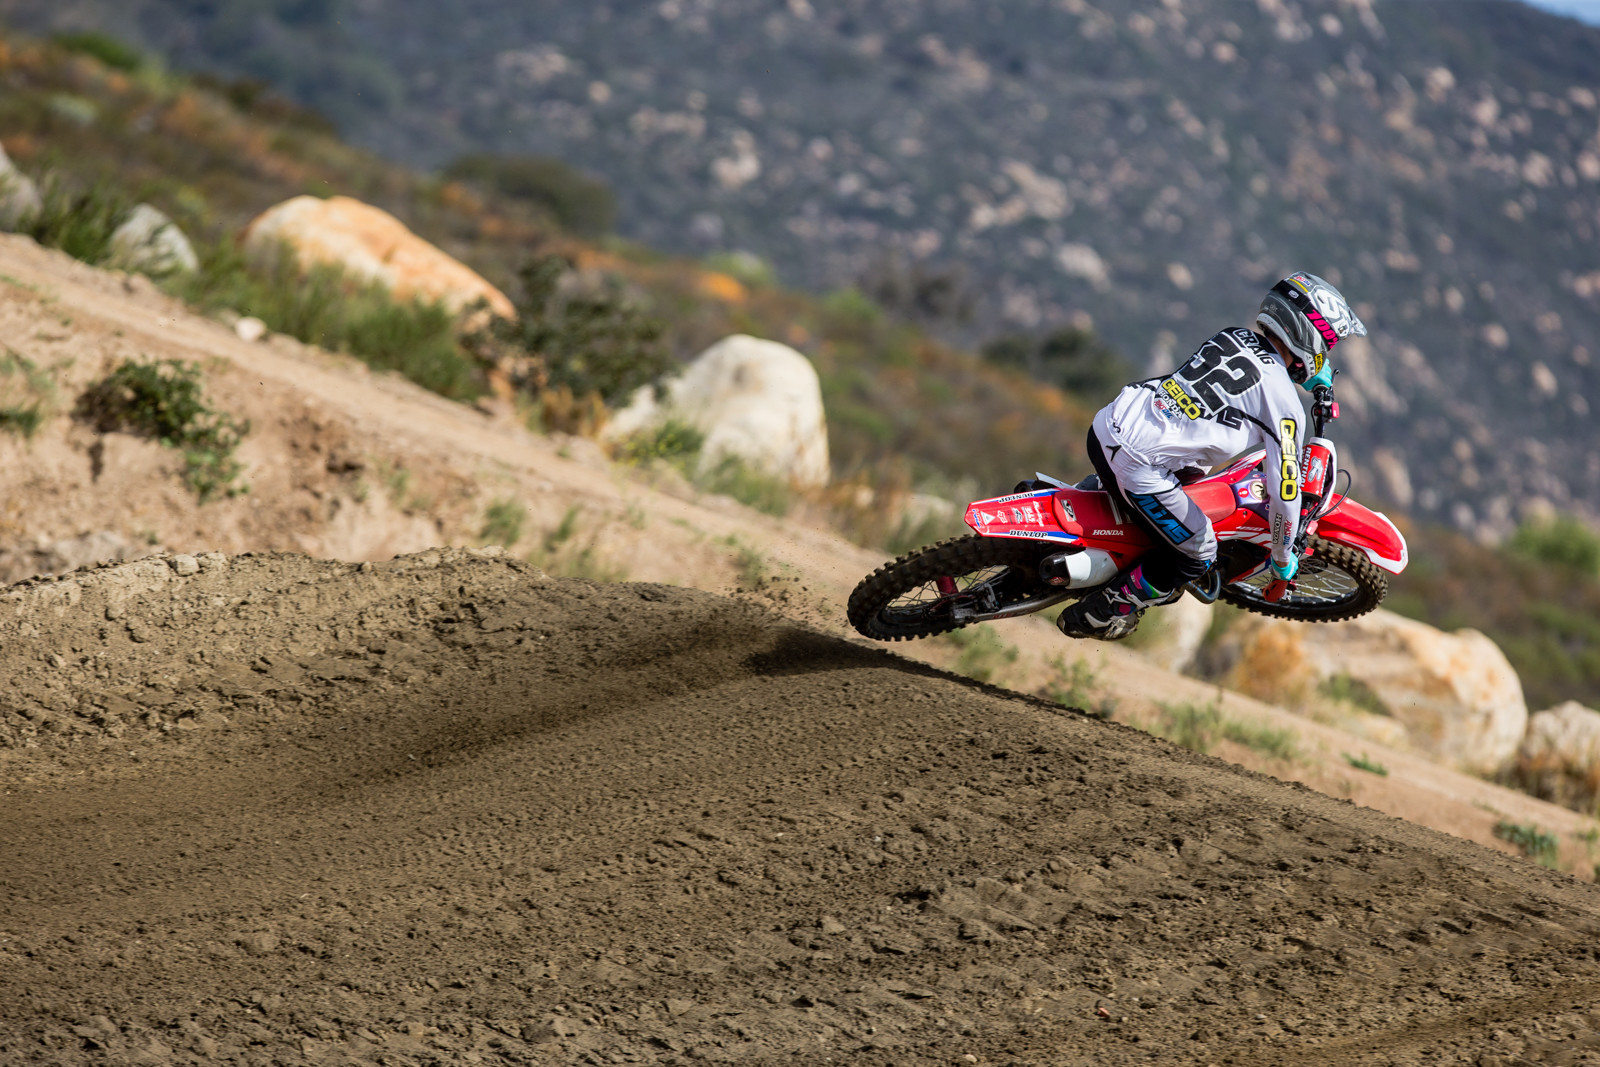 Christian Craig was testing with the HRC crew as he's riding Cole Seely's CRF450R all summer. On the Geico team Craig ran Showa but for the 450 team he's tested both and will instead run KYB.